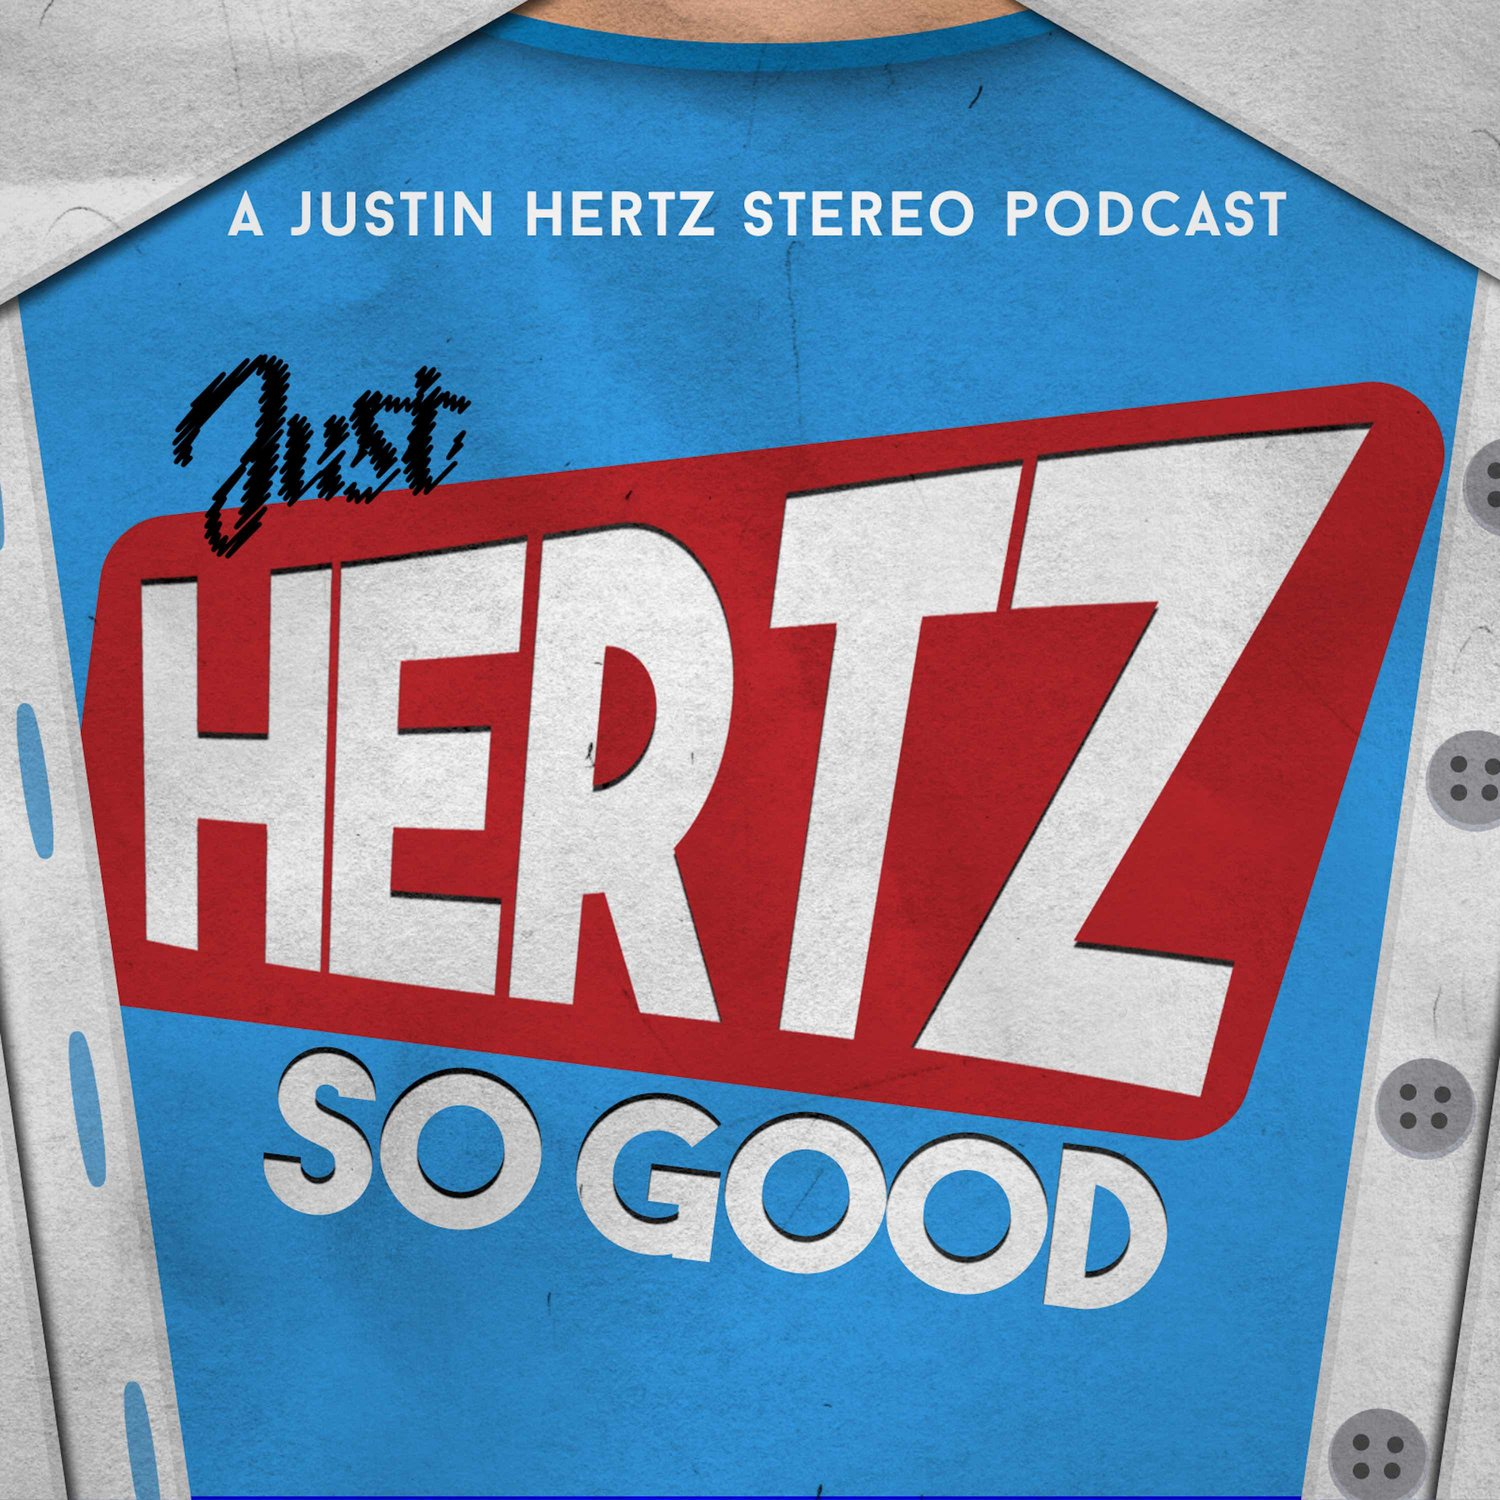 Just Hertz So Good